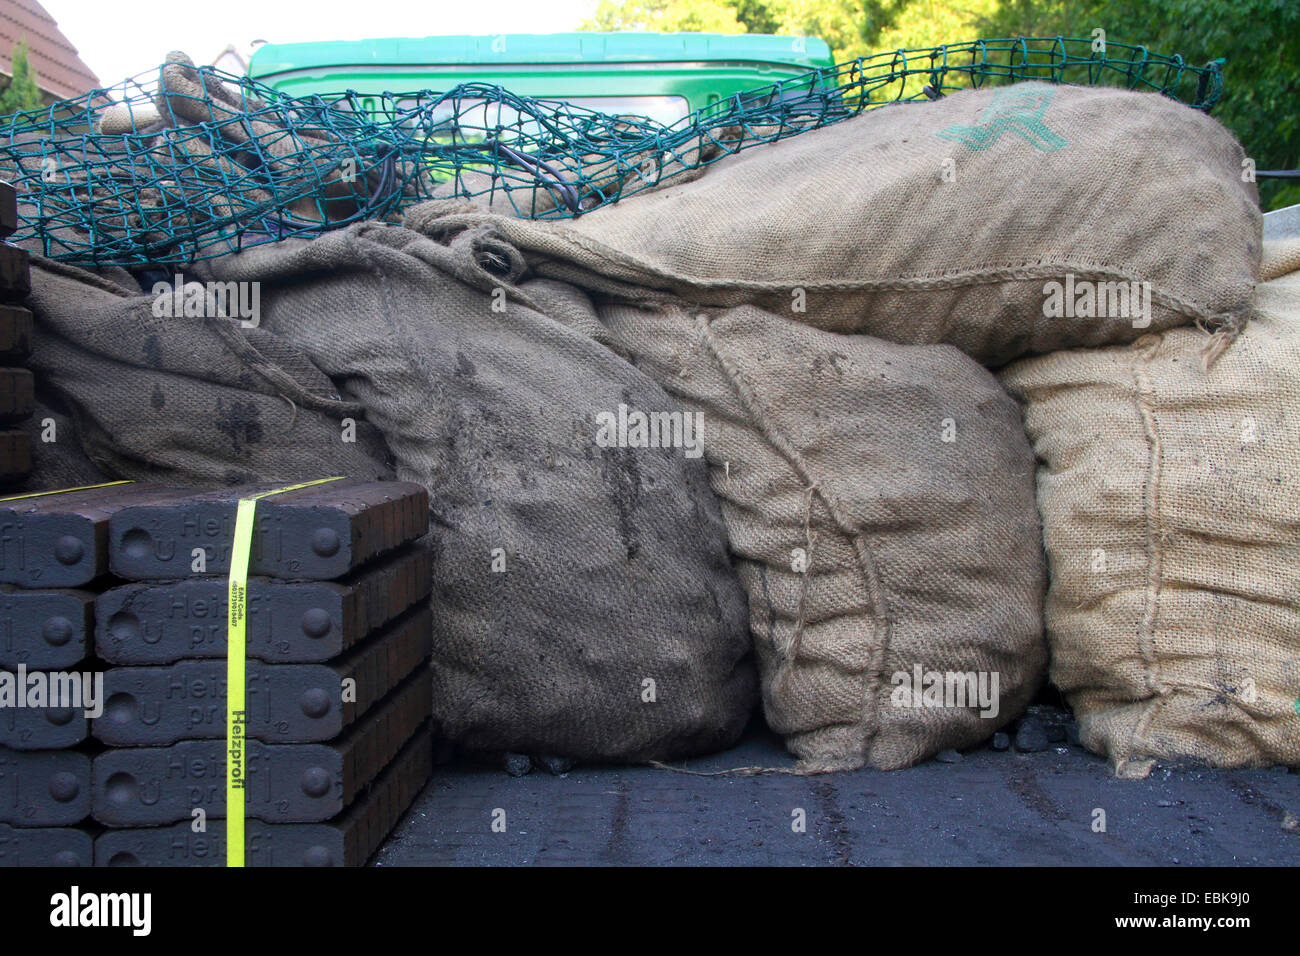 piled lignite briquettes and coking coal in sacks on a van, Germany - Stock Image